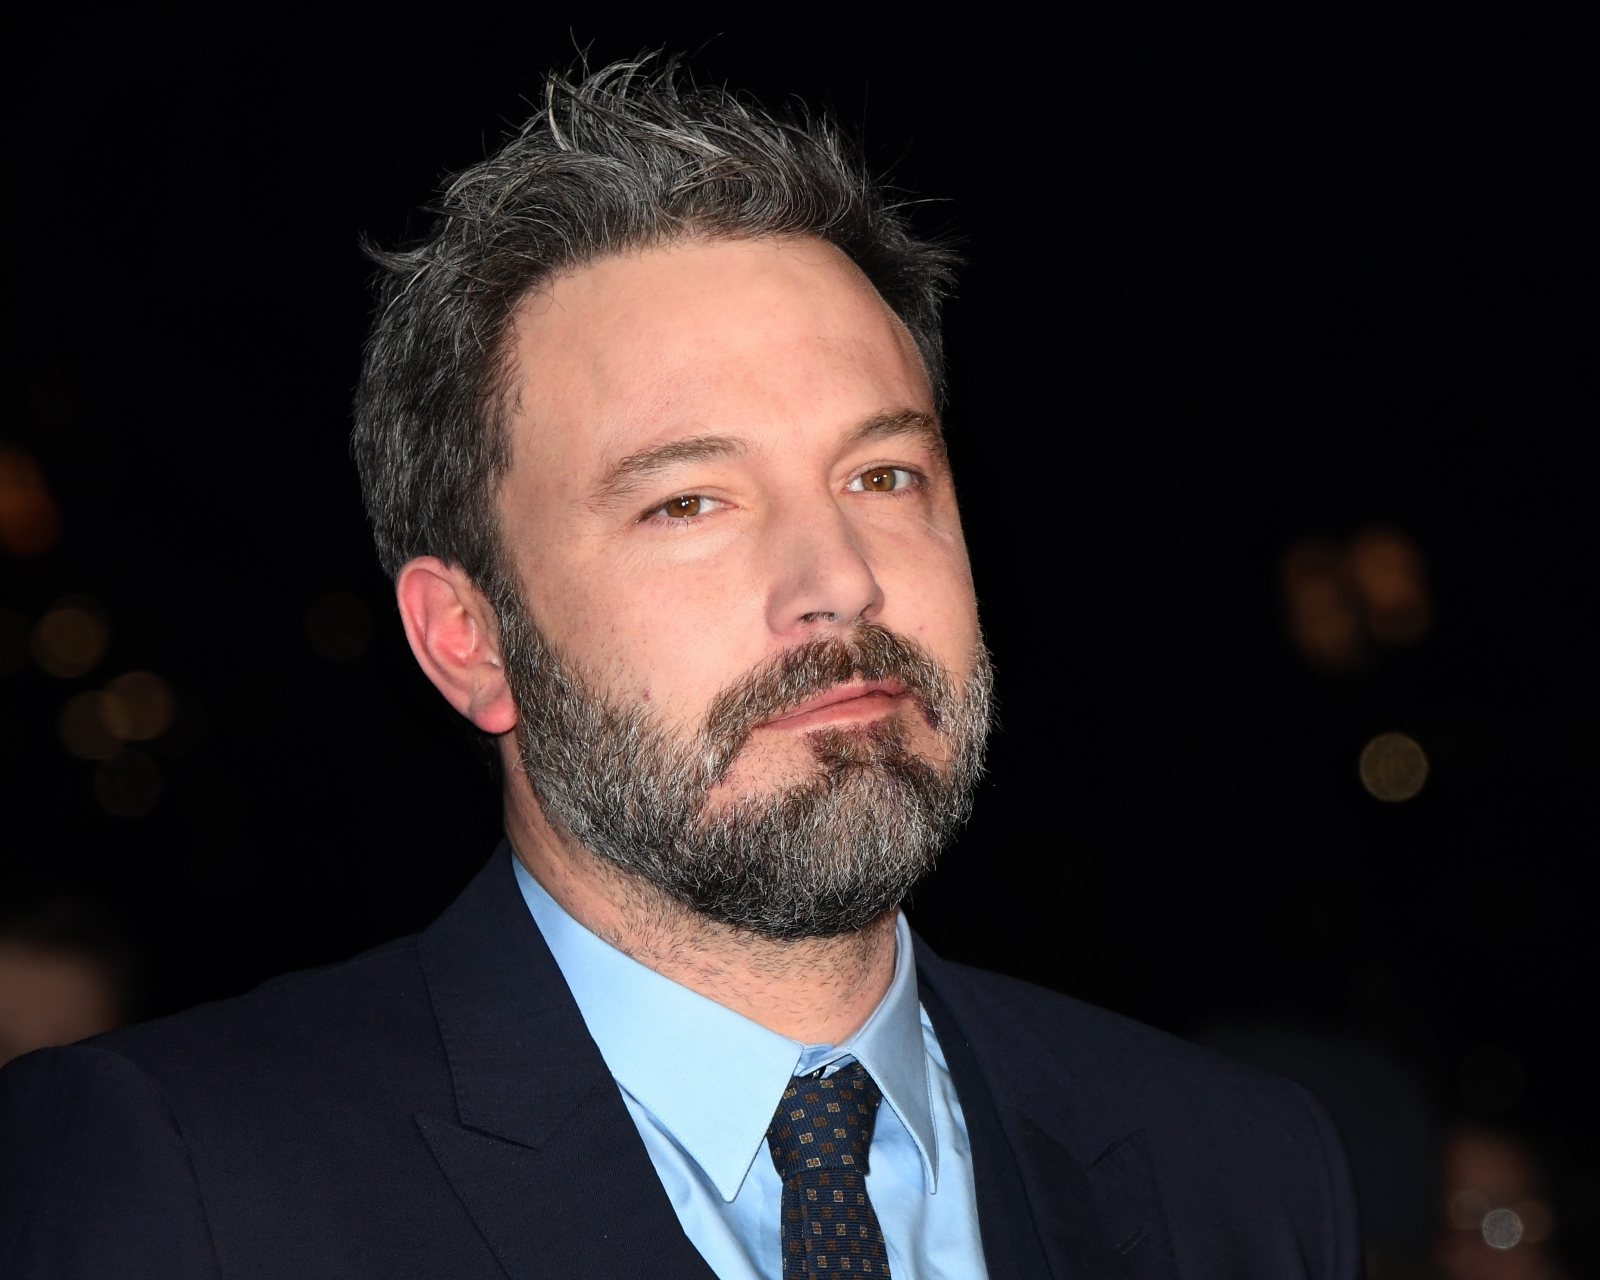 Wendy Williams calls Ben Affleck a 'stupid, stupid man' after his groping scandal